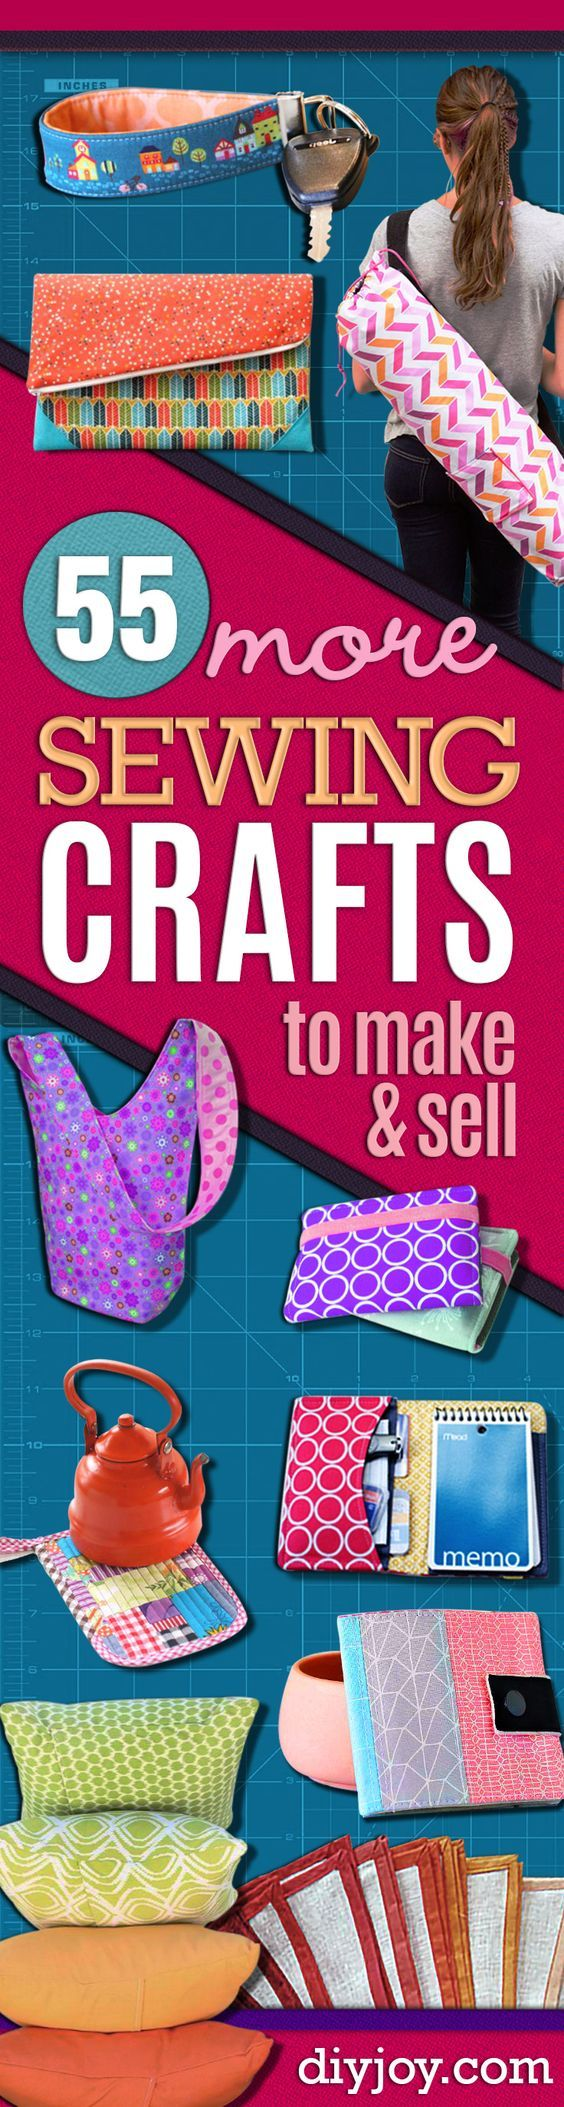 25 best ideas about sewing to sell on pinterest sewing ForSewing Projects To Make And Sell